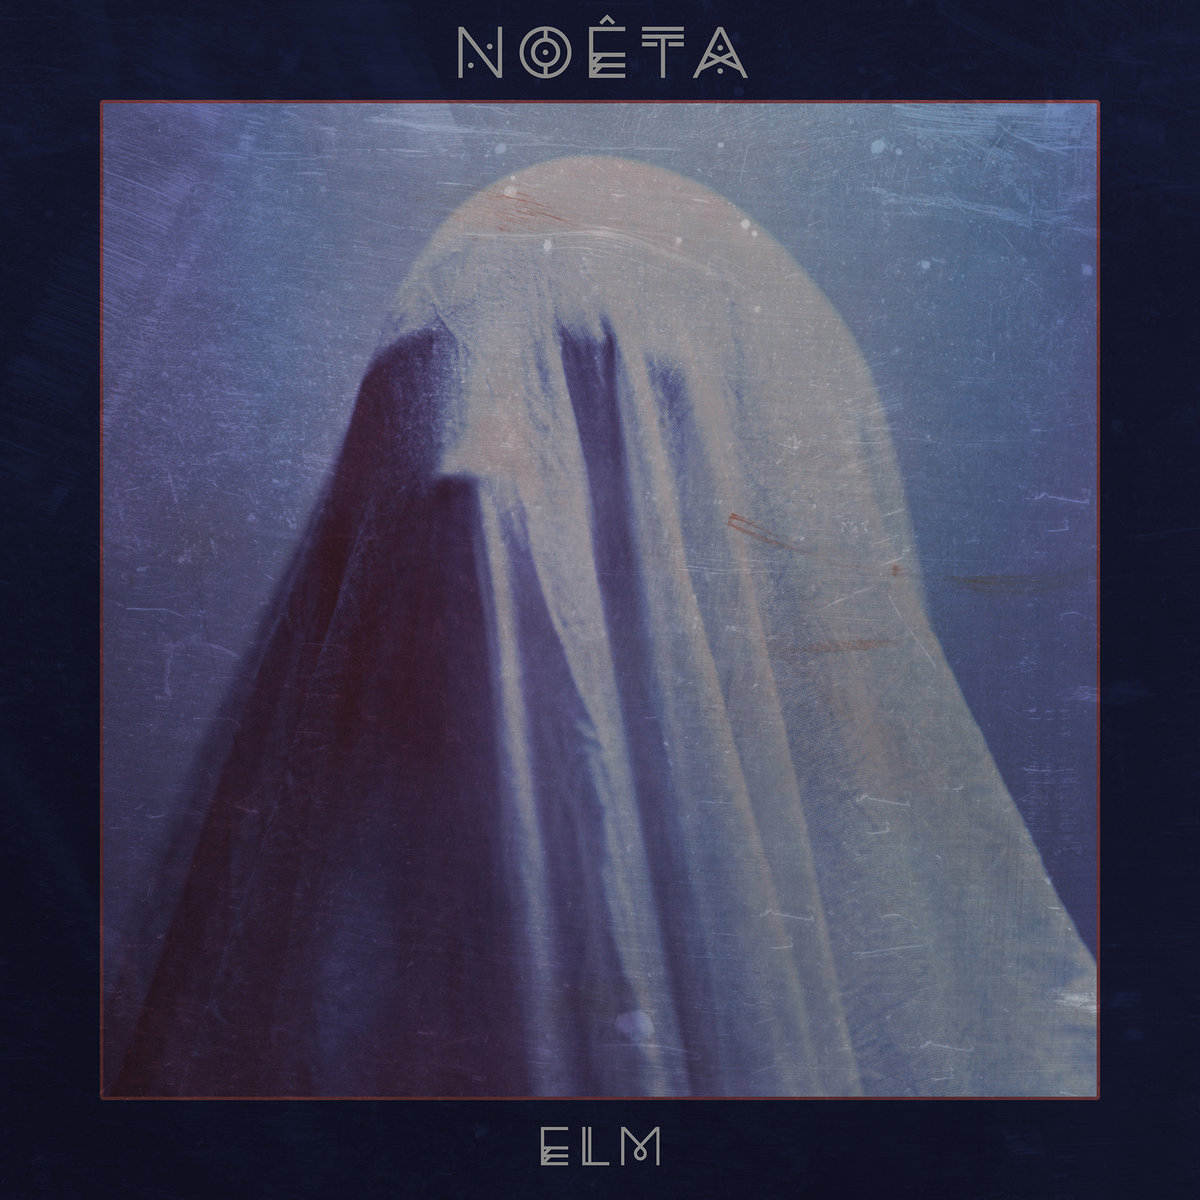 NOÊTA elm Album Cover artwork